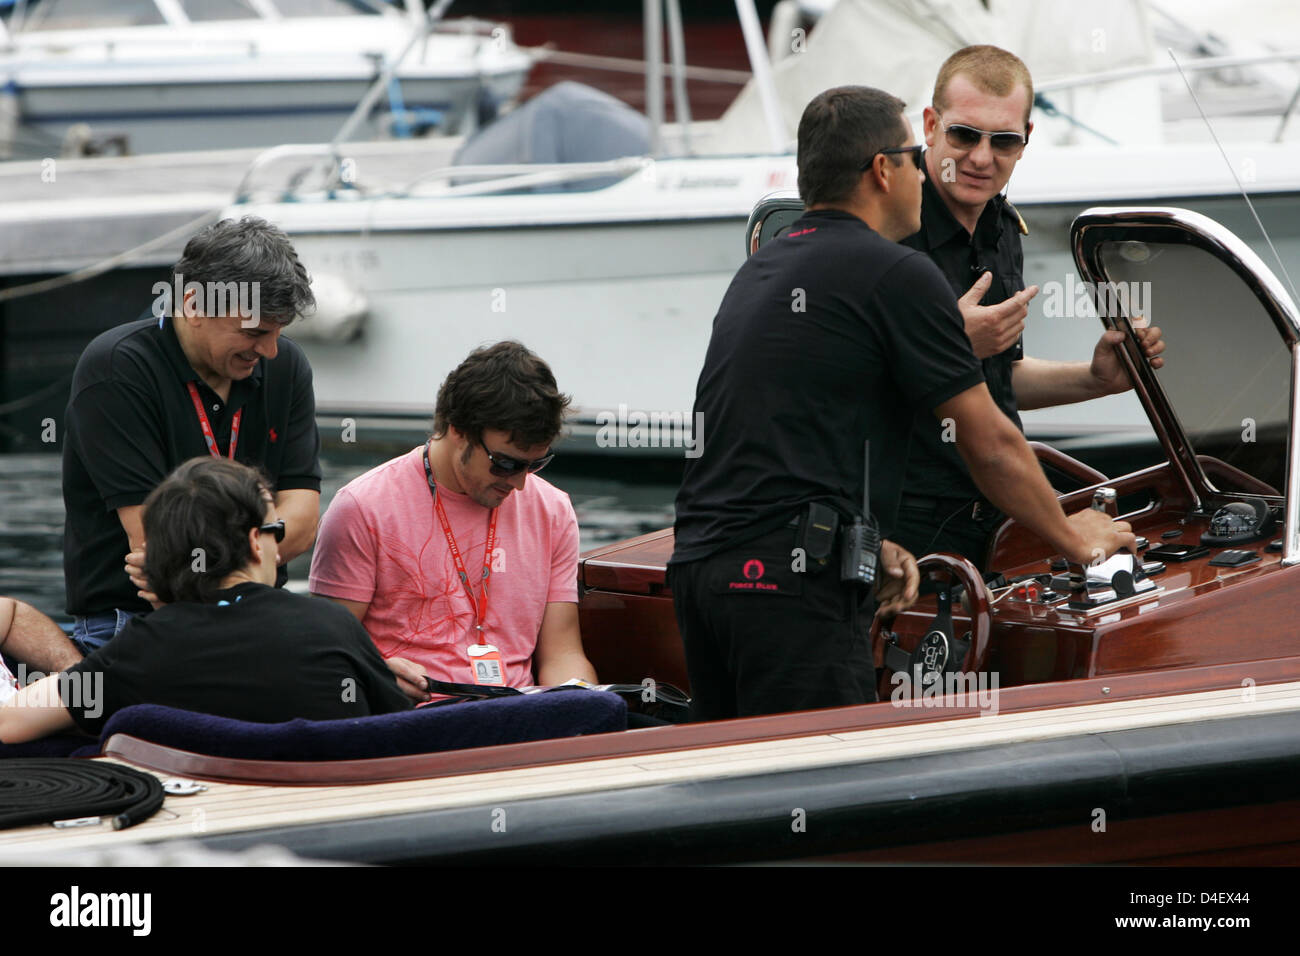 67036930f0 Spanish Formula One driver Fernando Alonso of Renault F1 (3-L) and Polish  Formula One driver Robert Kubica of BMW Sauber (L) sit in a boat in the  harbour in ...